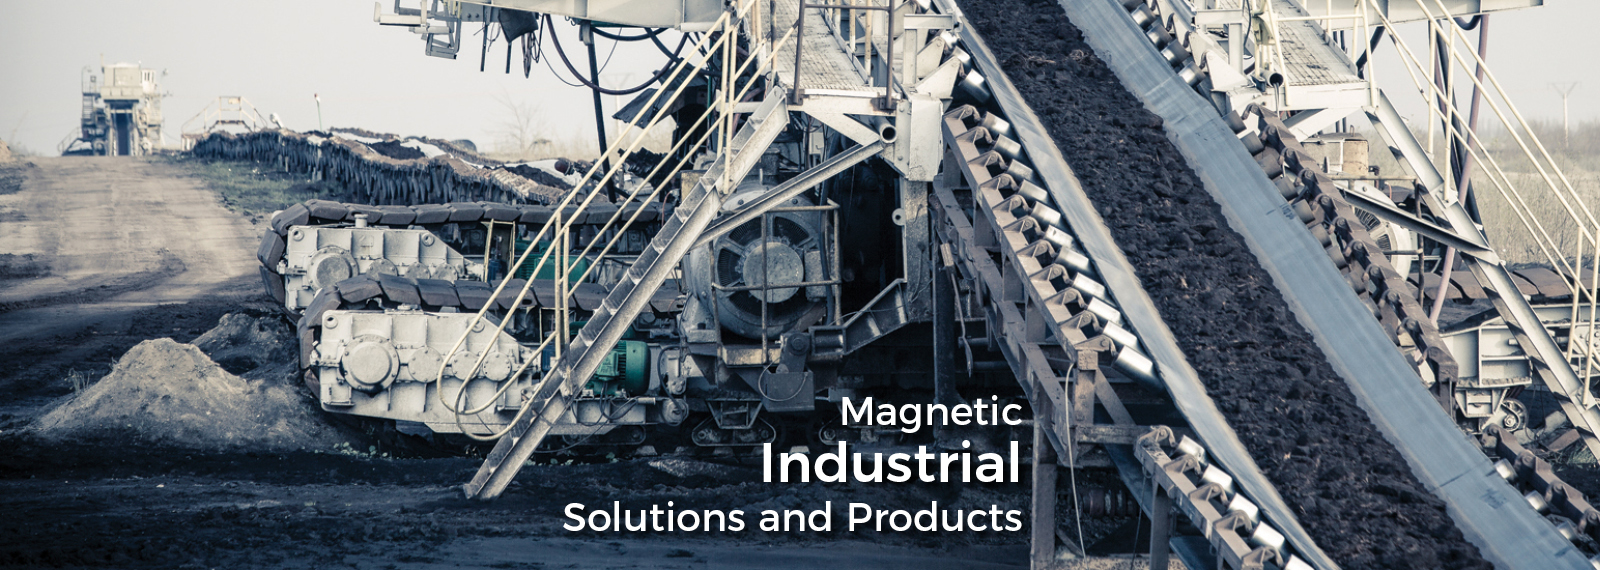 MSI Magnets Industrial Solutions Header